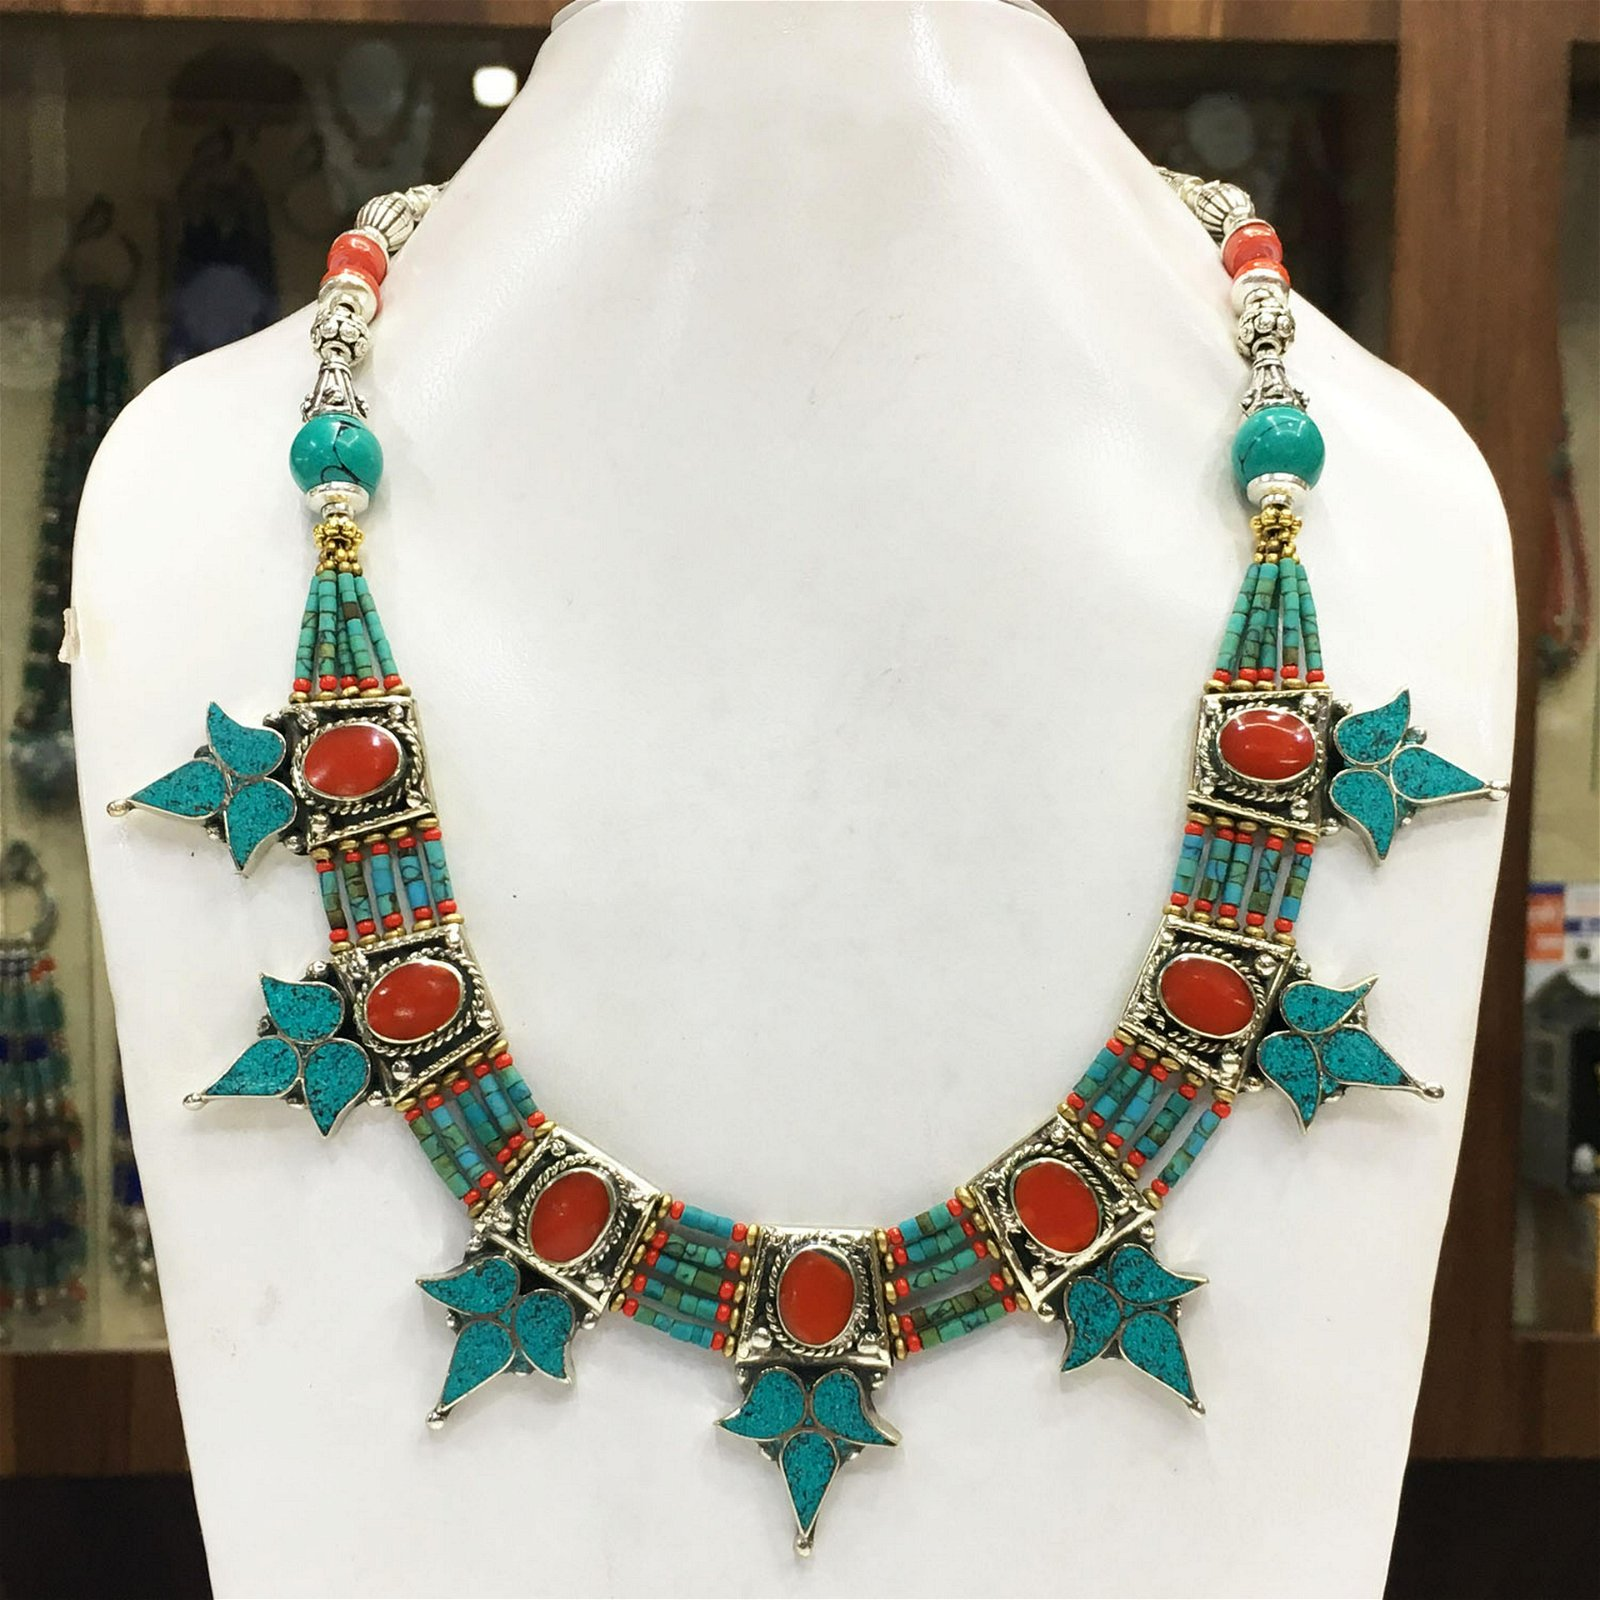 Vintage Tibetan Coral & Turquoise Beaded Necklace